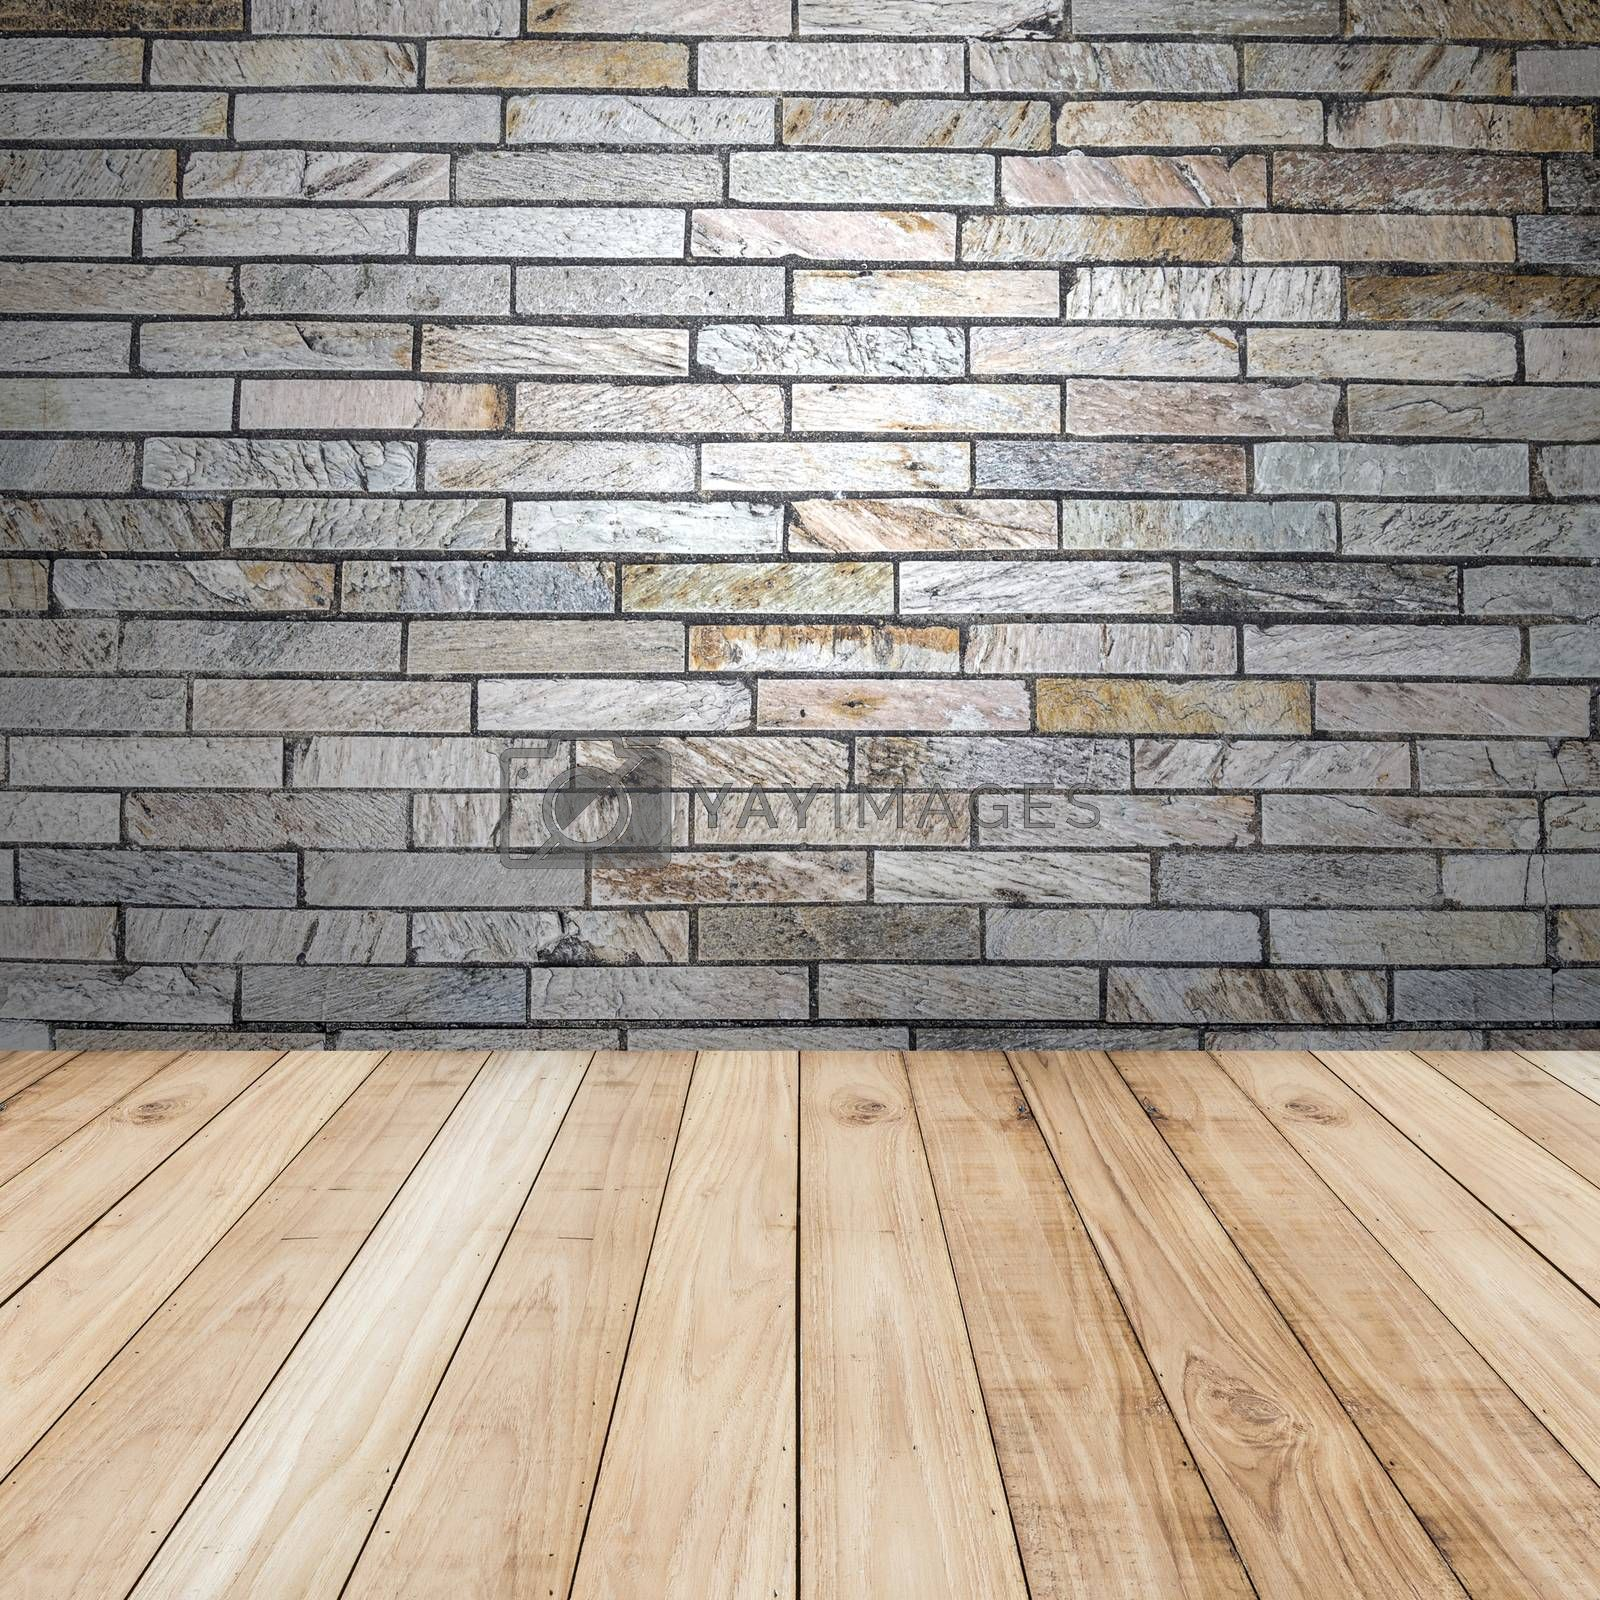 Big brown floors wood planks texture background wallpaper. Stand for product showcase